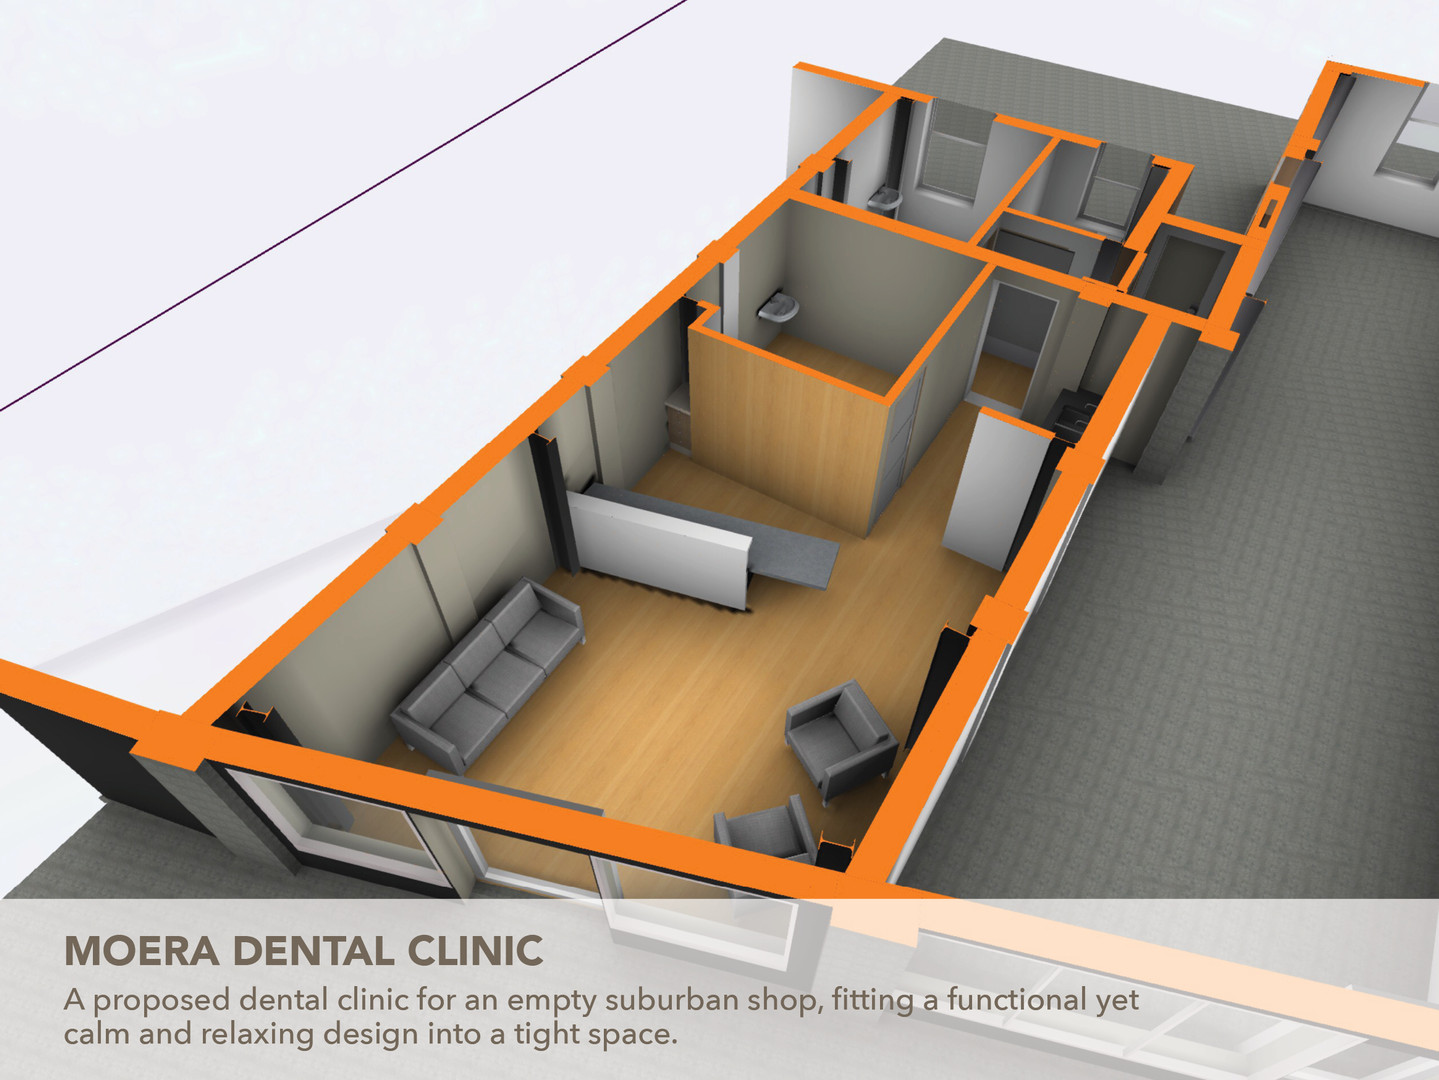 Moera-Dental-Clinic-Main.jpg